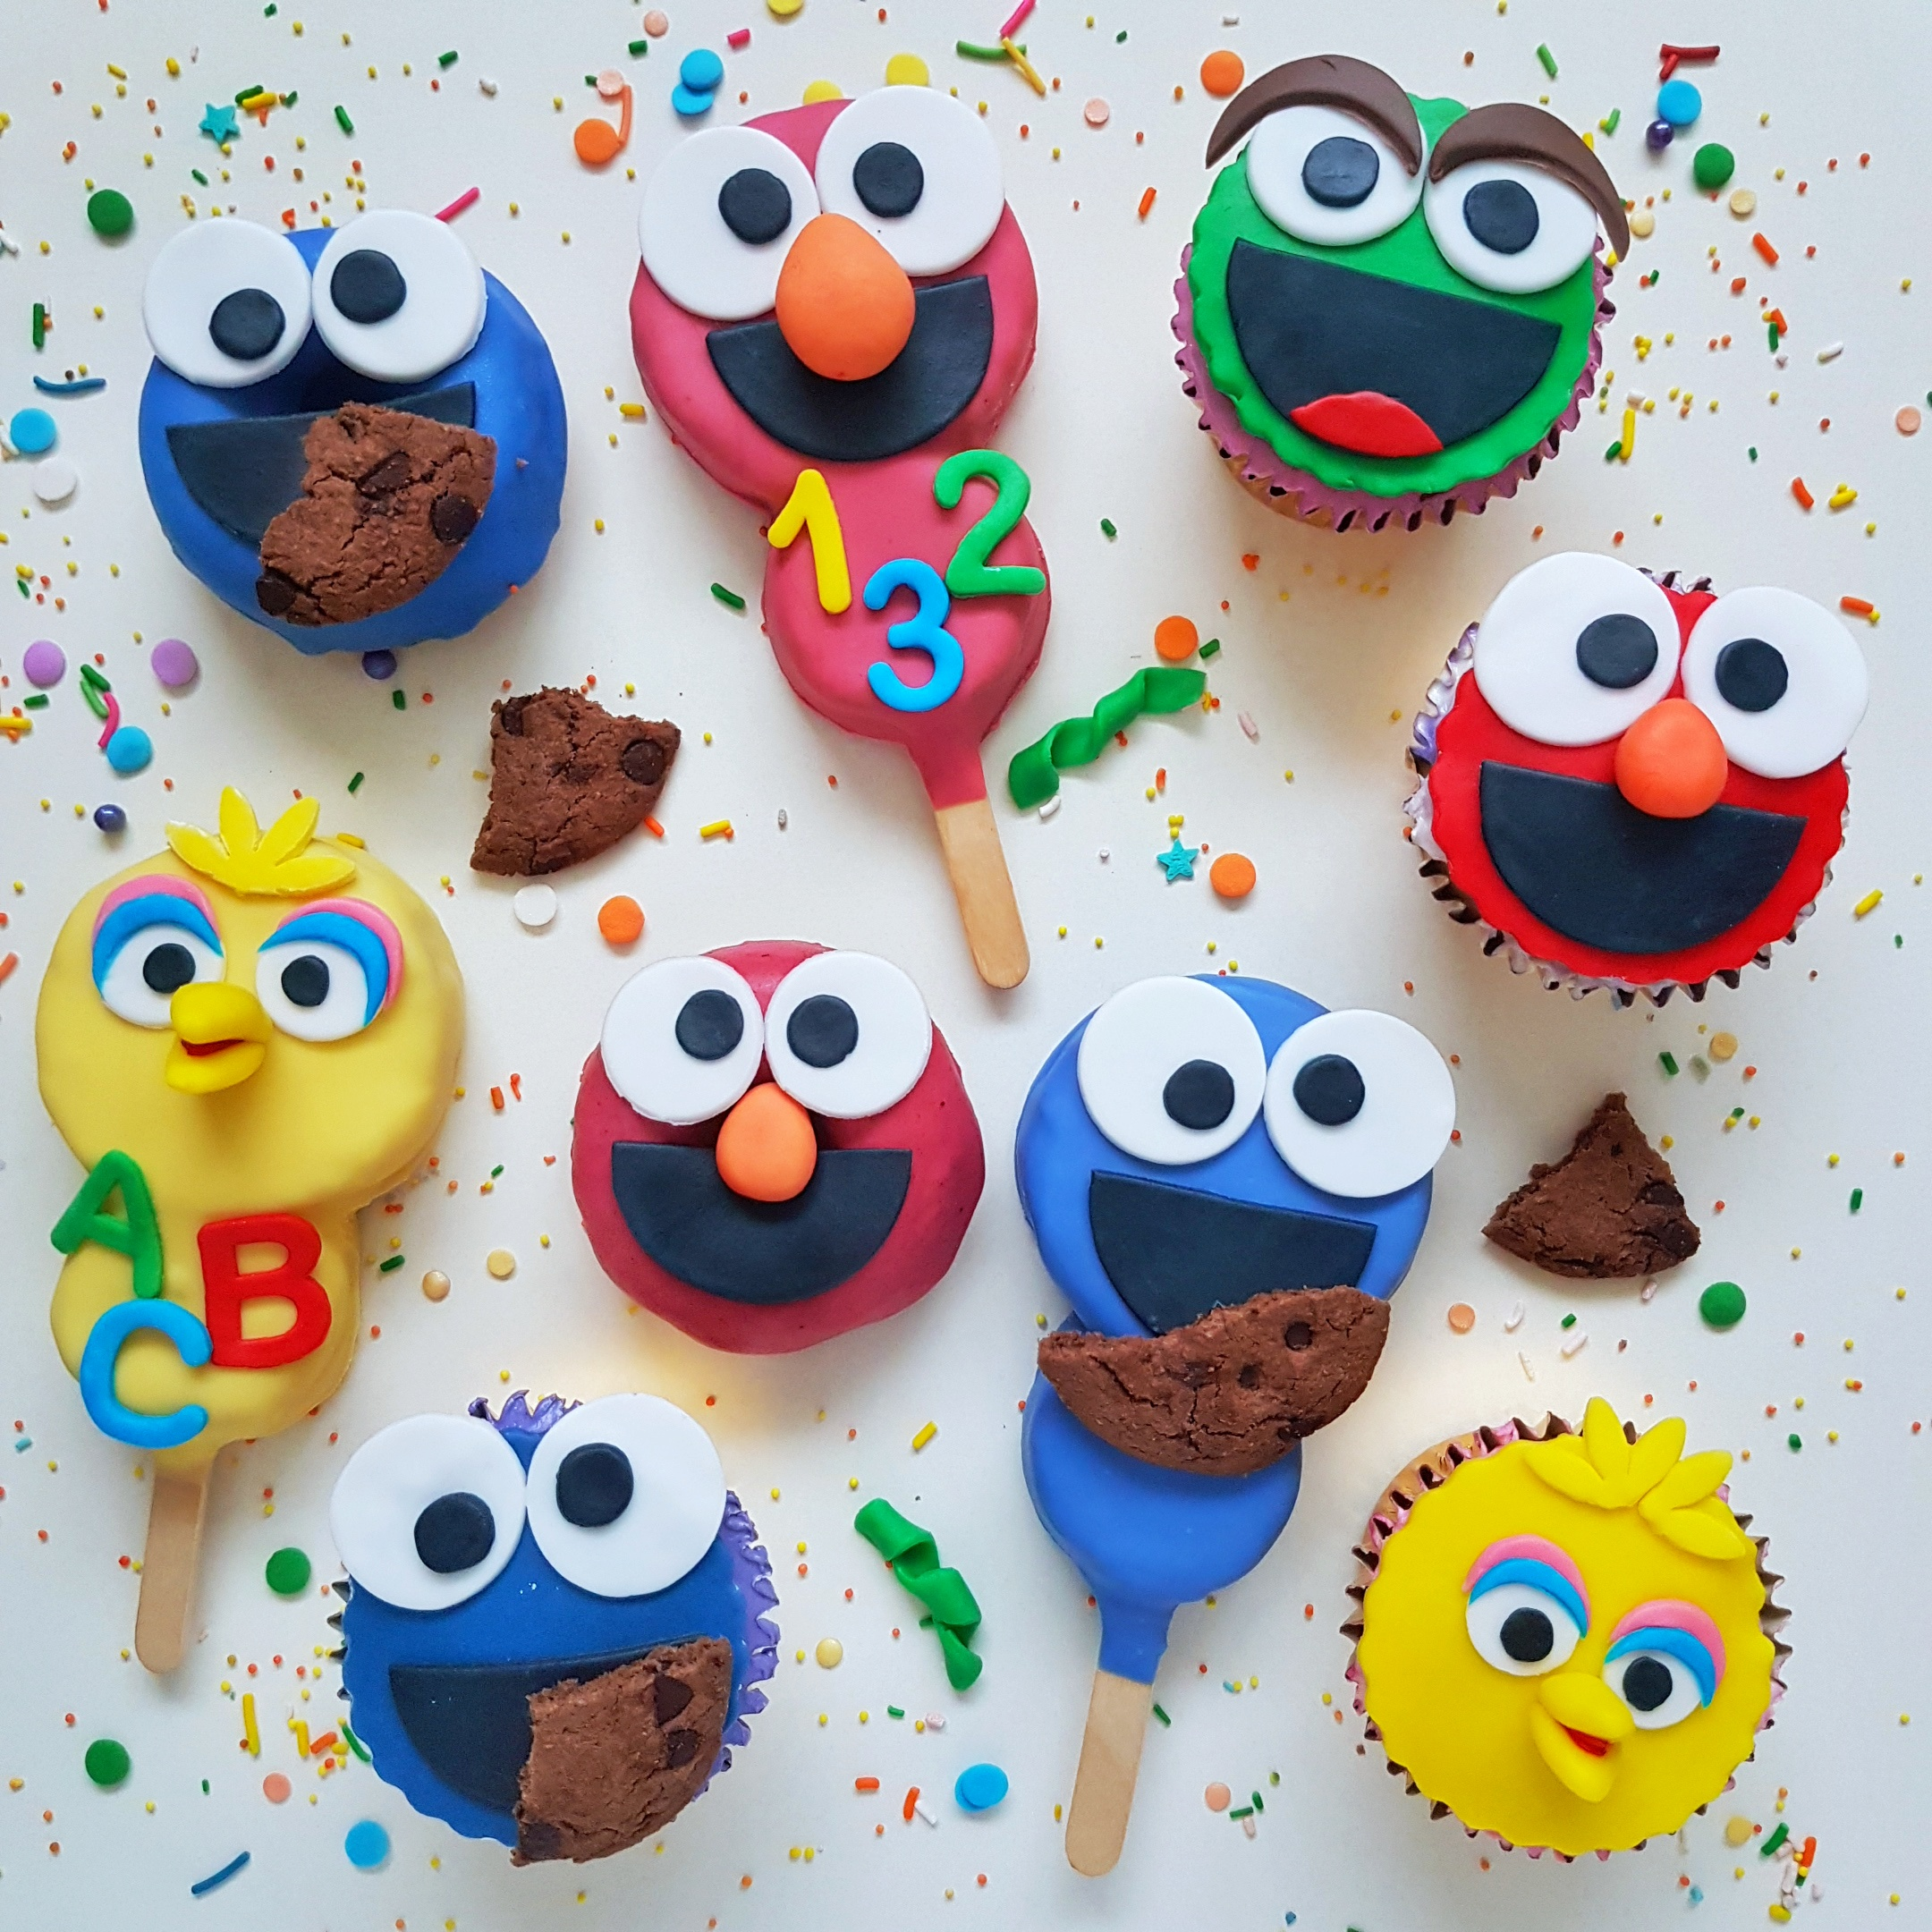 Sesame Street Cake Pops and Cupcakes by The Baking Experiment